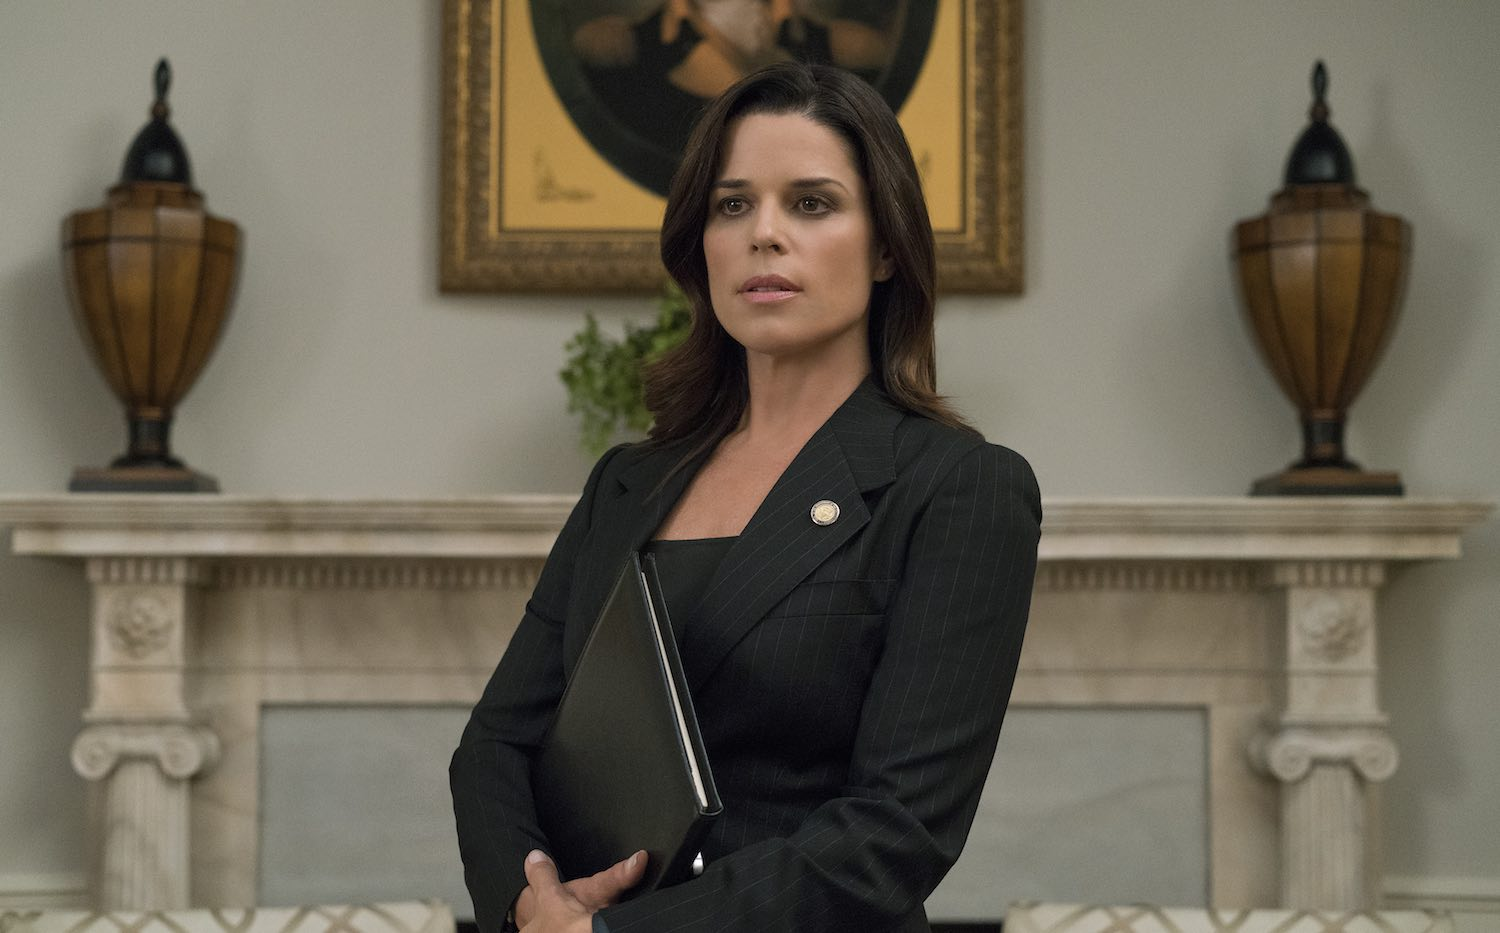 Neve Campbell confirma su regreso a la nueva cinta de 'Scream'